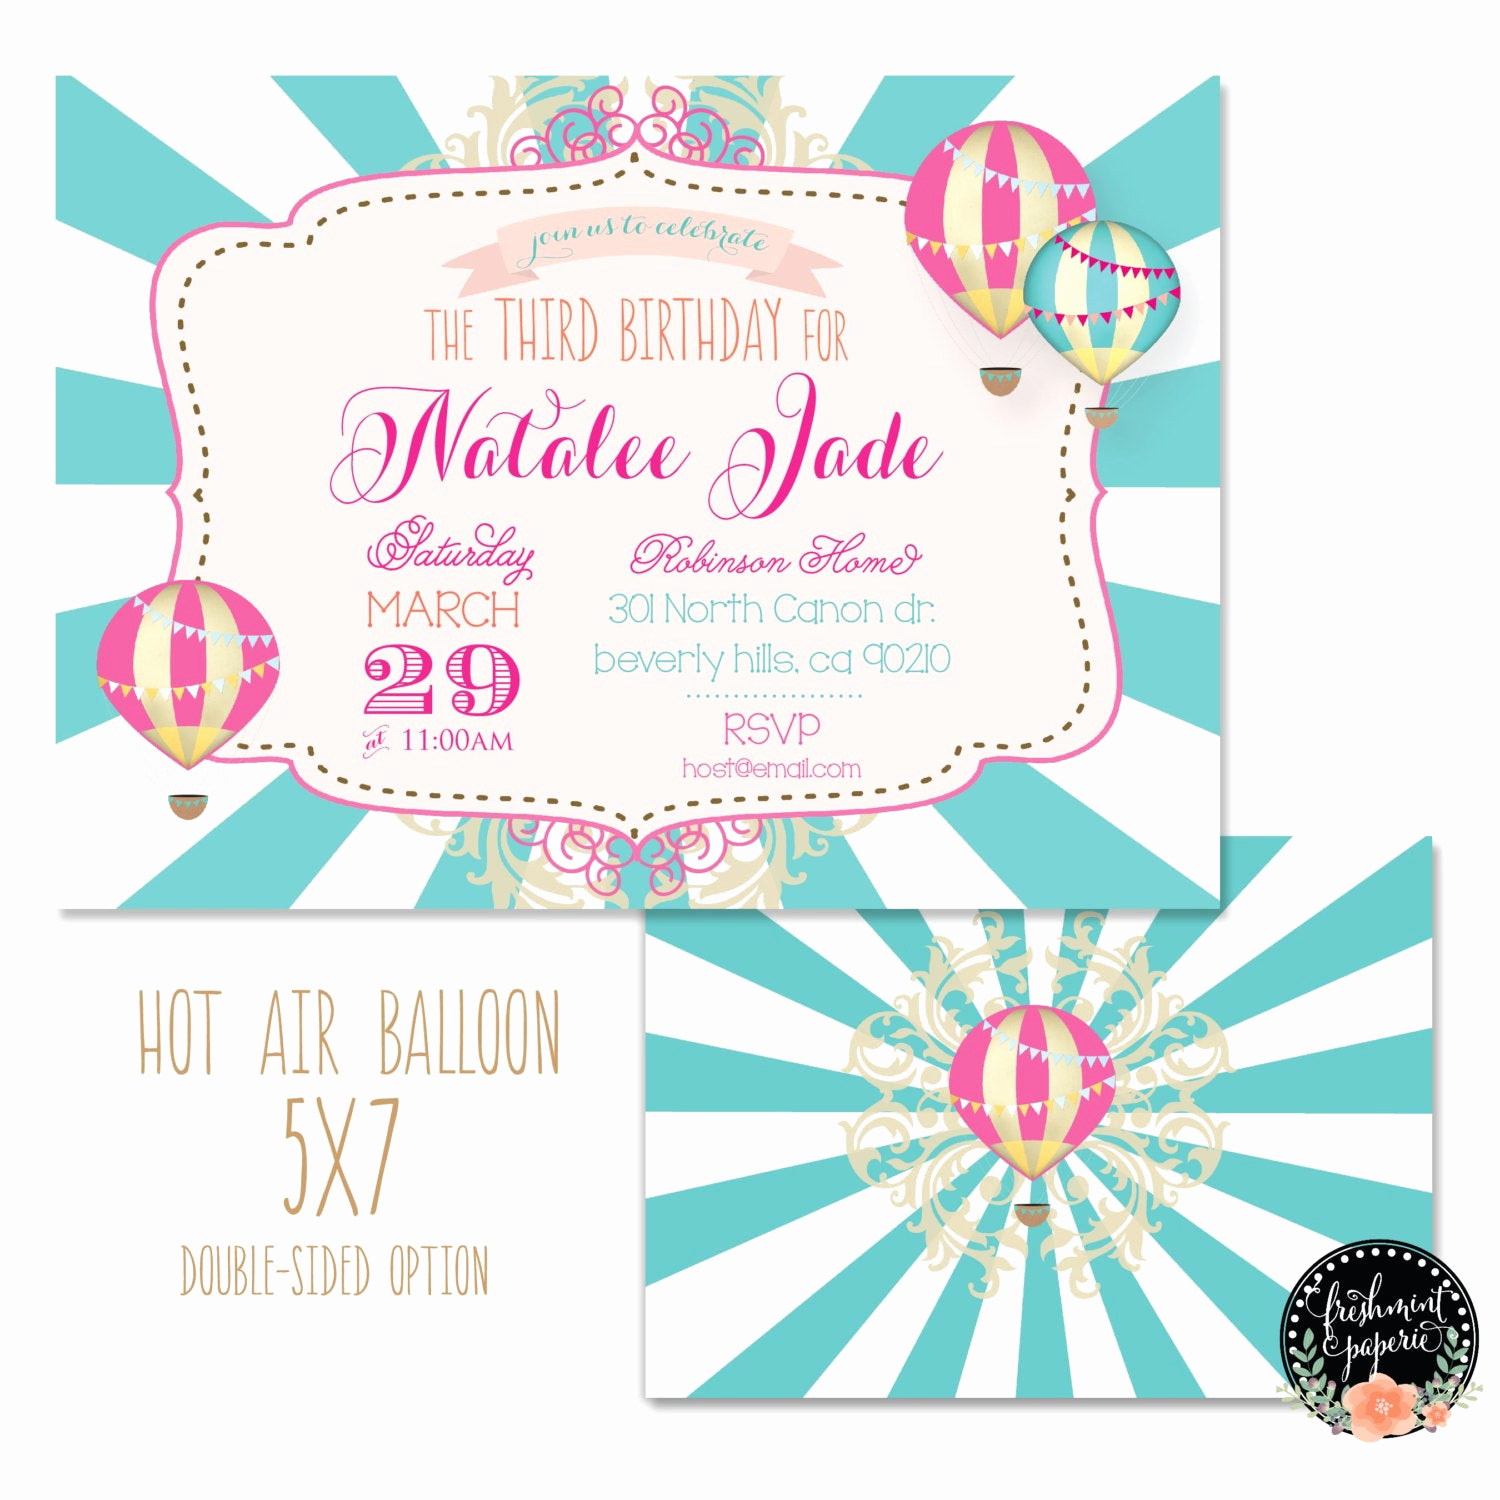 Hot Air Balloon Invitation Best Of Printable Invitations Hot Air Balloon Invitation Vintage